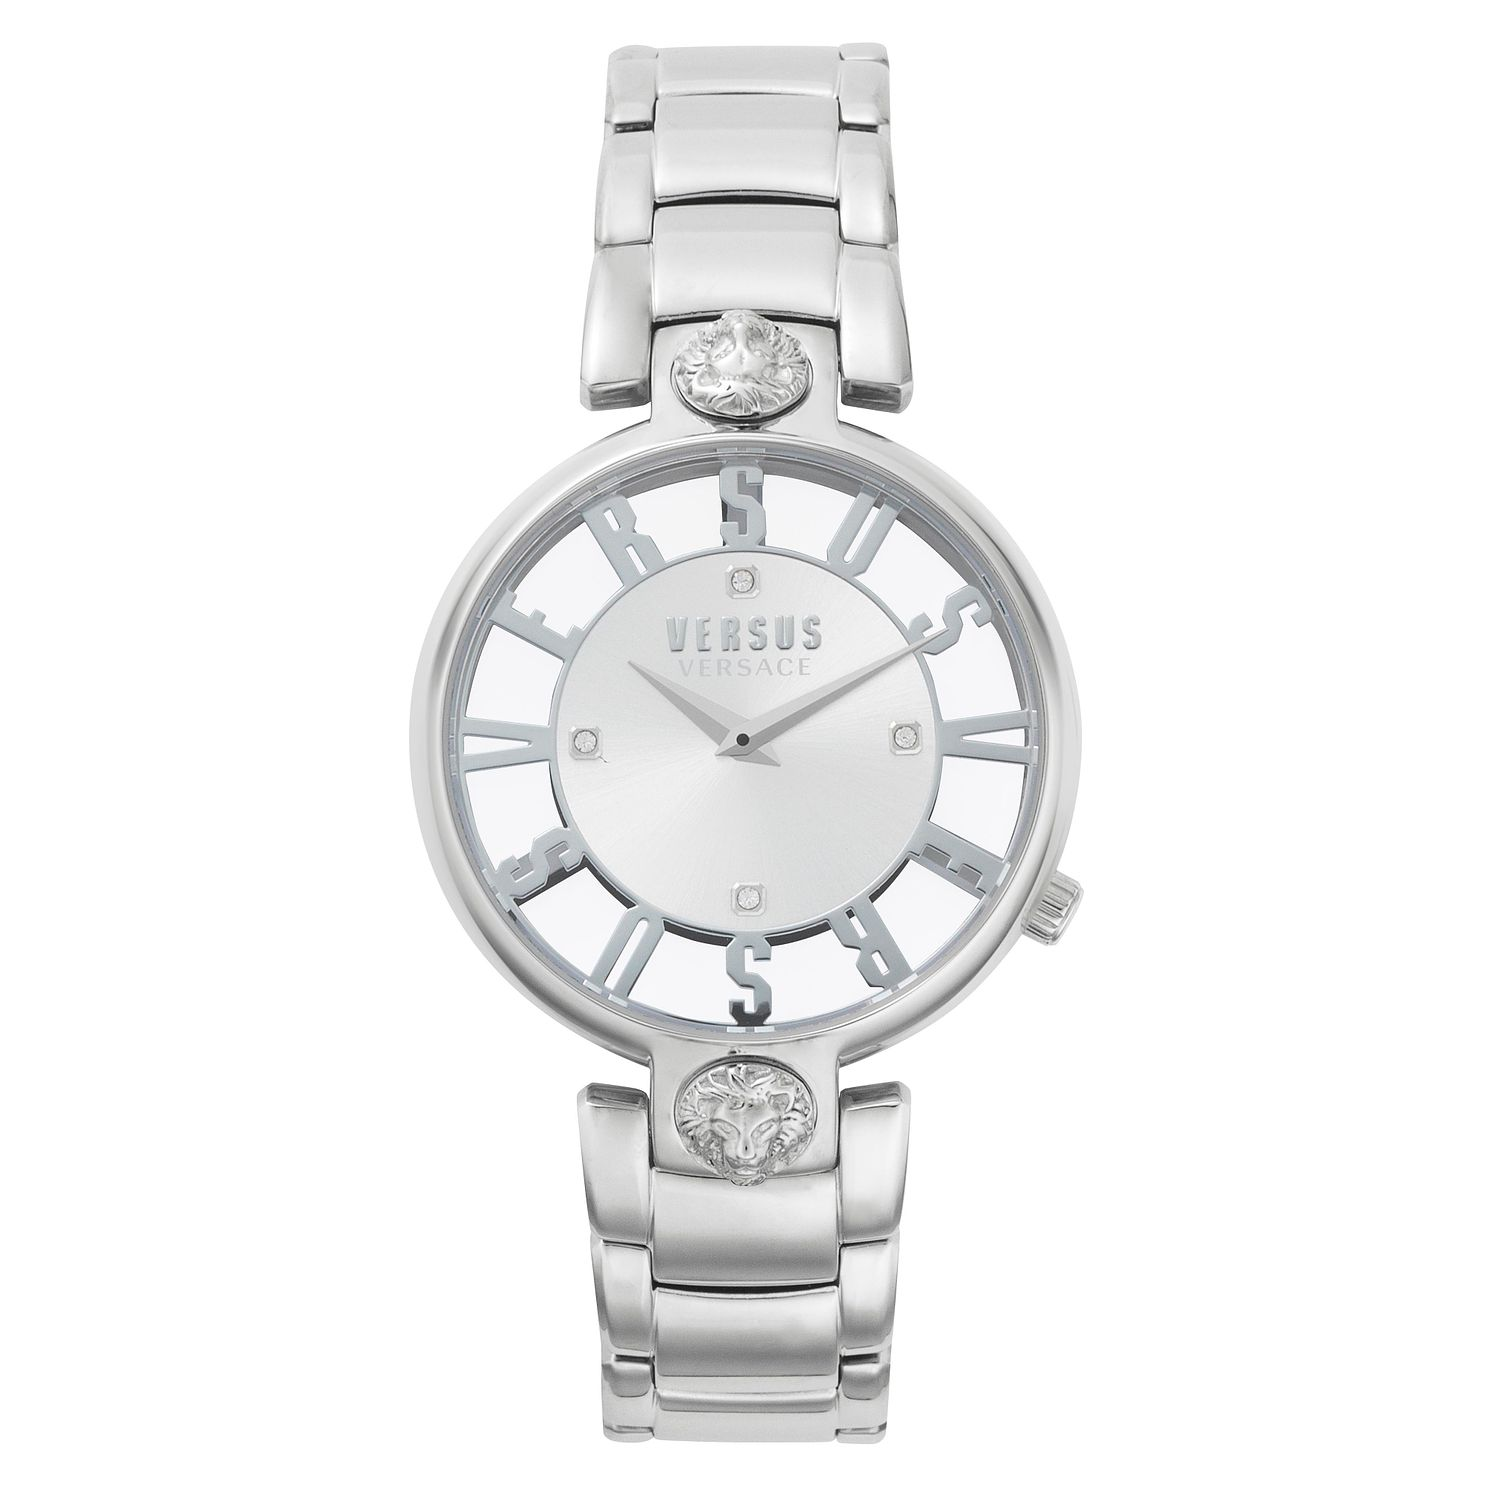 Versus Versace Kirstenhof Ladies' Stainless Steel Watch - Product number 8049971